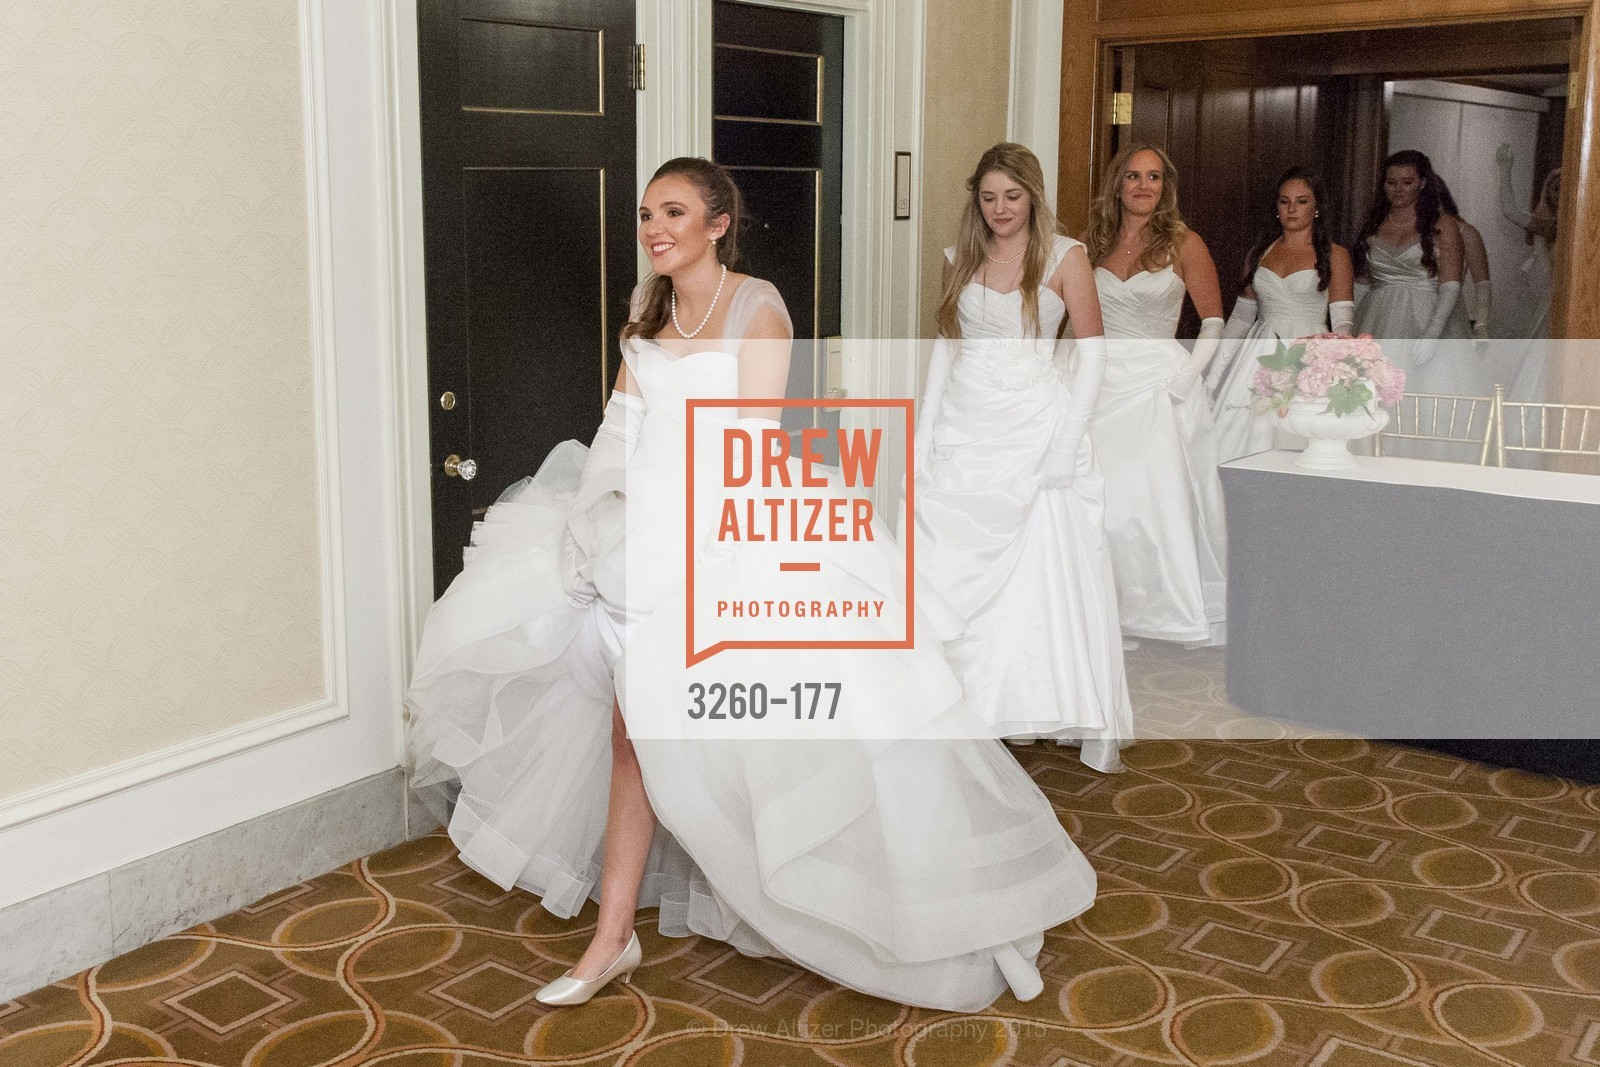 Jennifer Hannah Baylis, Julia Marley Chenette, Katarina Lina Churich, The 2015 San Francisco Debutante Ball, The Westin St. Francis San Francisco Union Square. 335 Powell St, June 20th, 2015,Drew Altizer, Drew Altizer Photography, full-service agency, private events, San Francisco photographer, photographer california